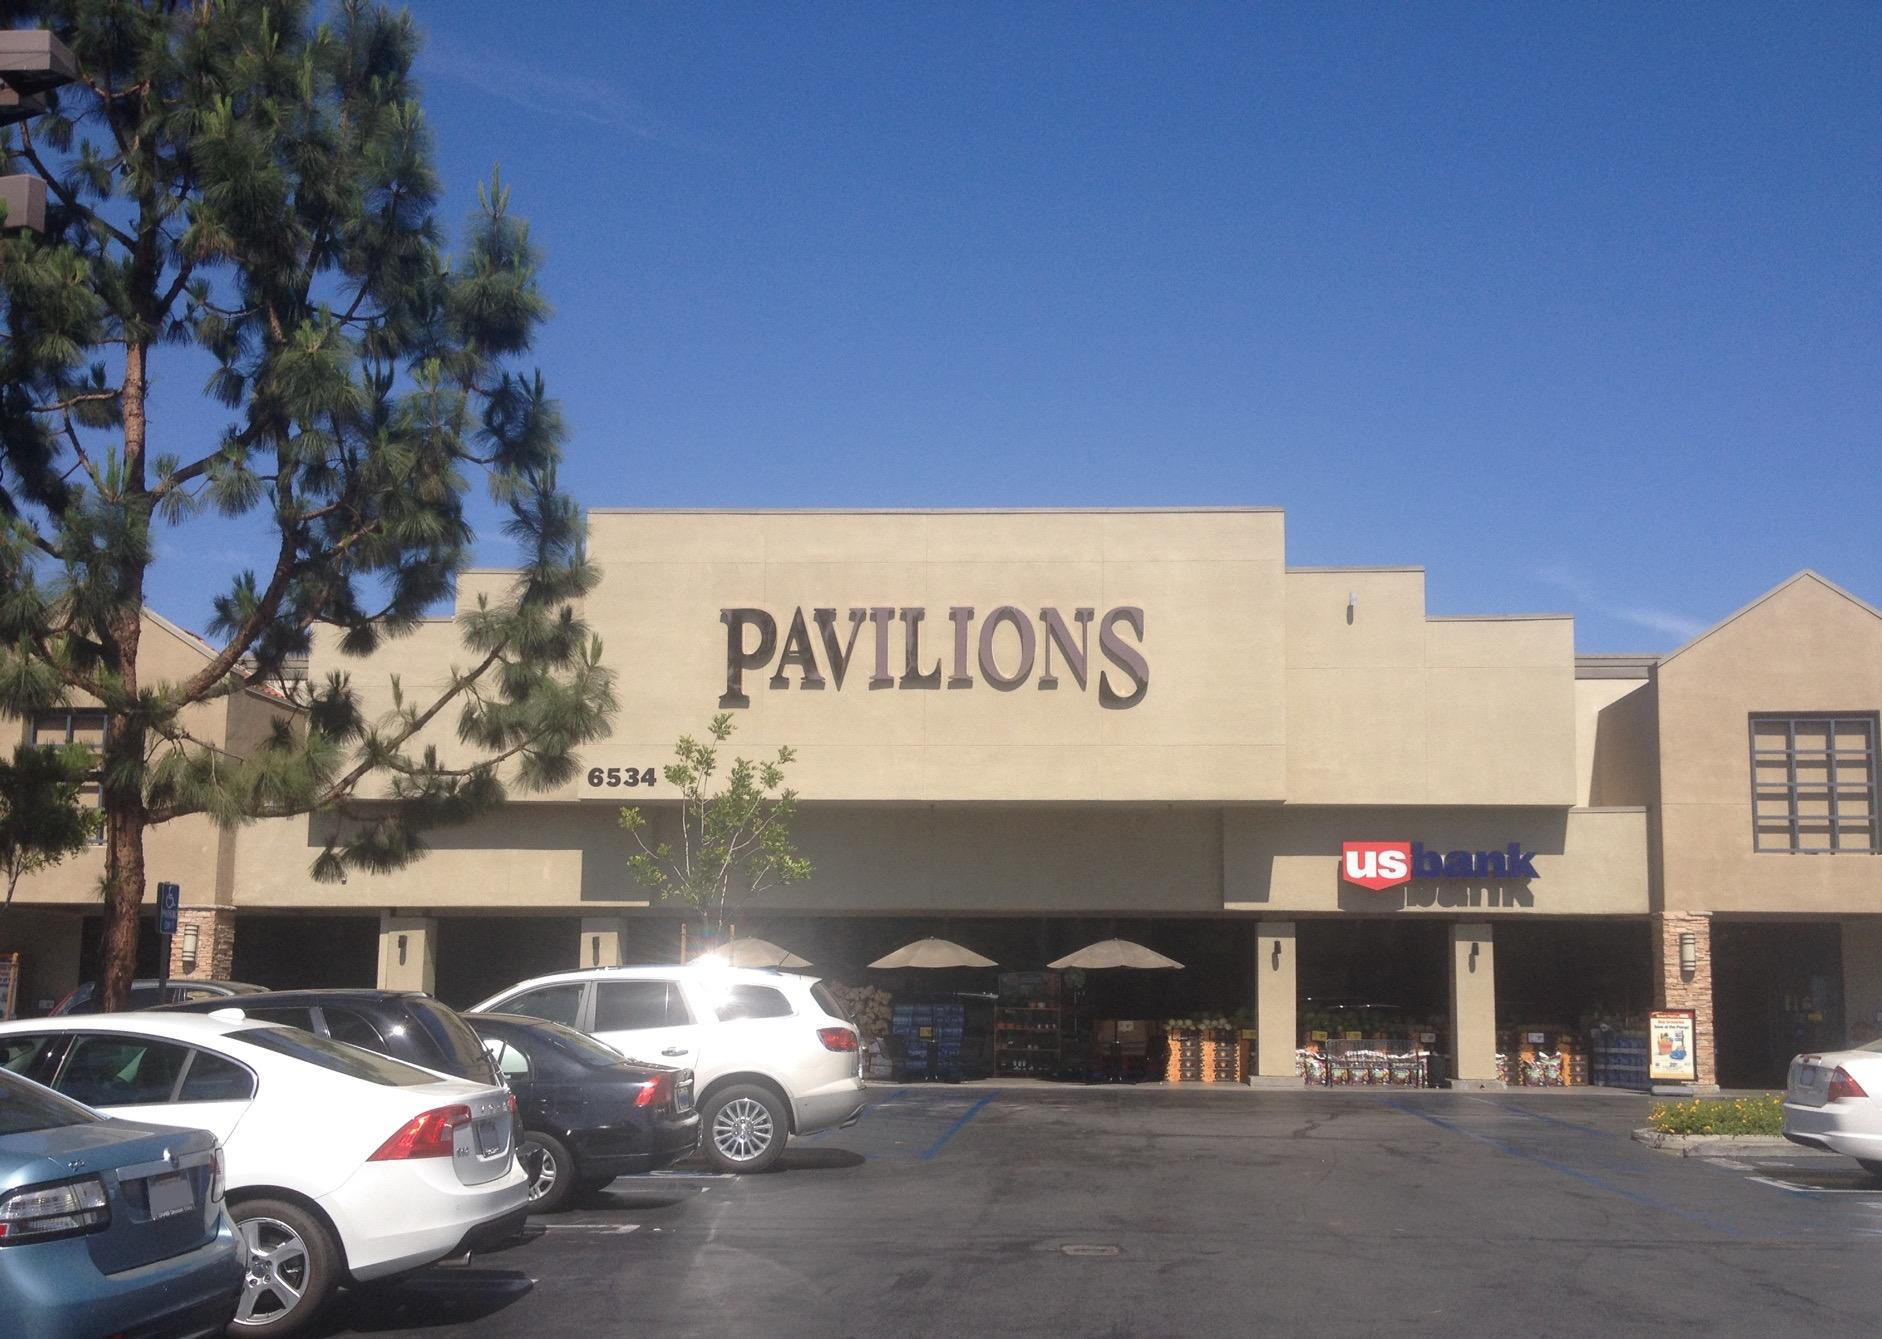 Pavilions store front picture at 6534 Platt Ave in West Hills CA